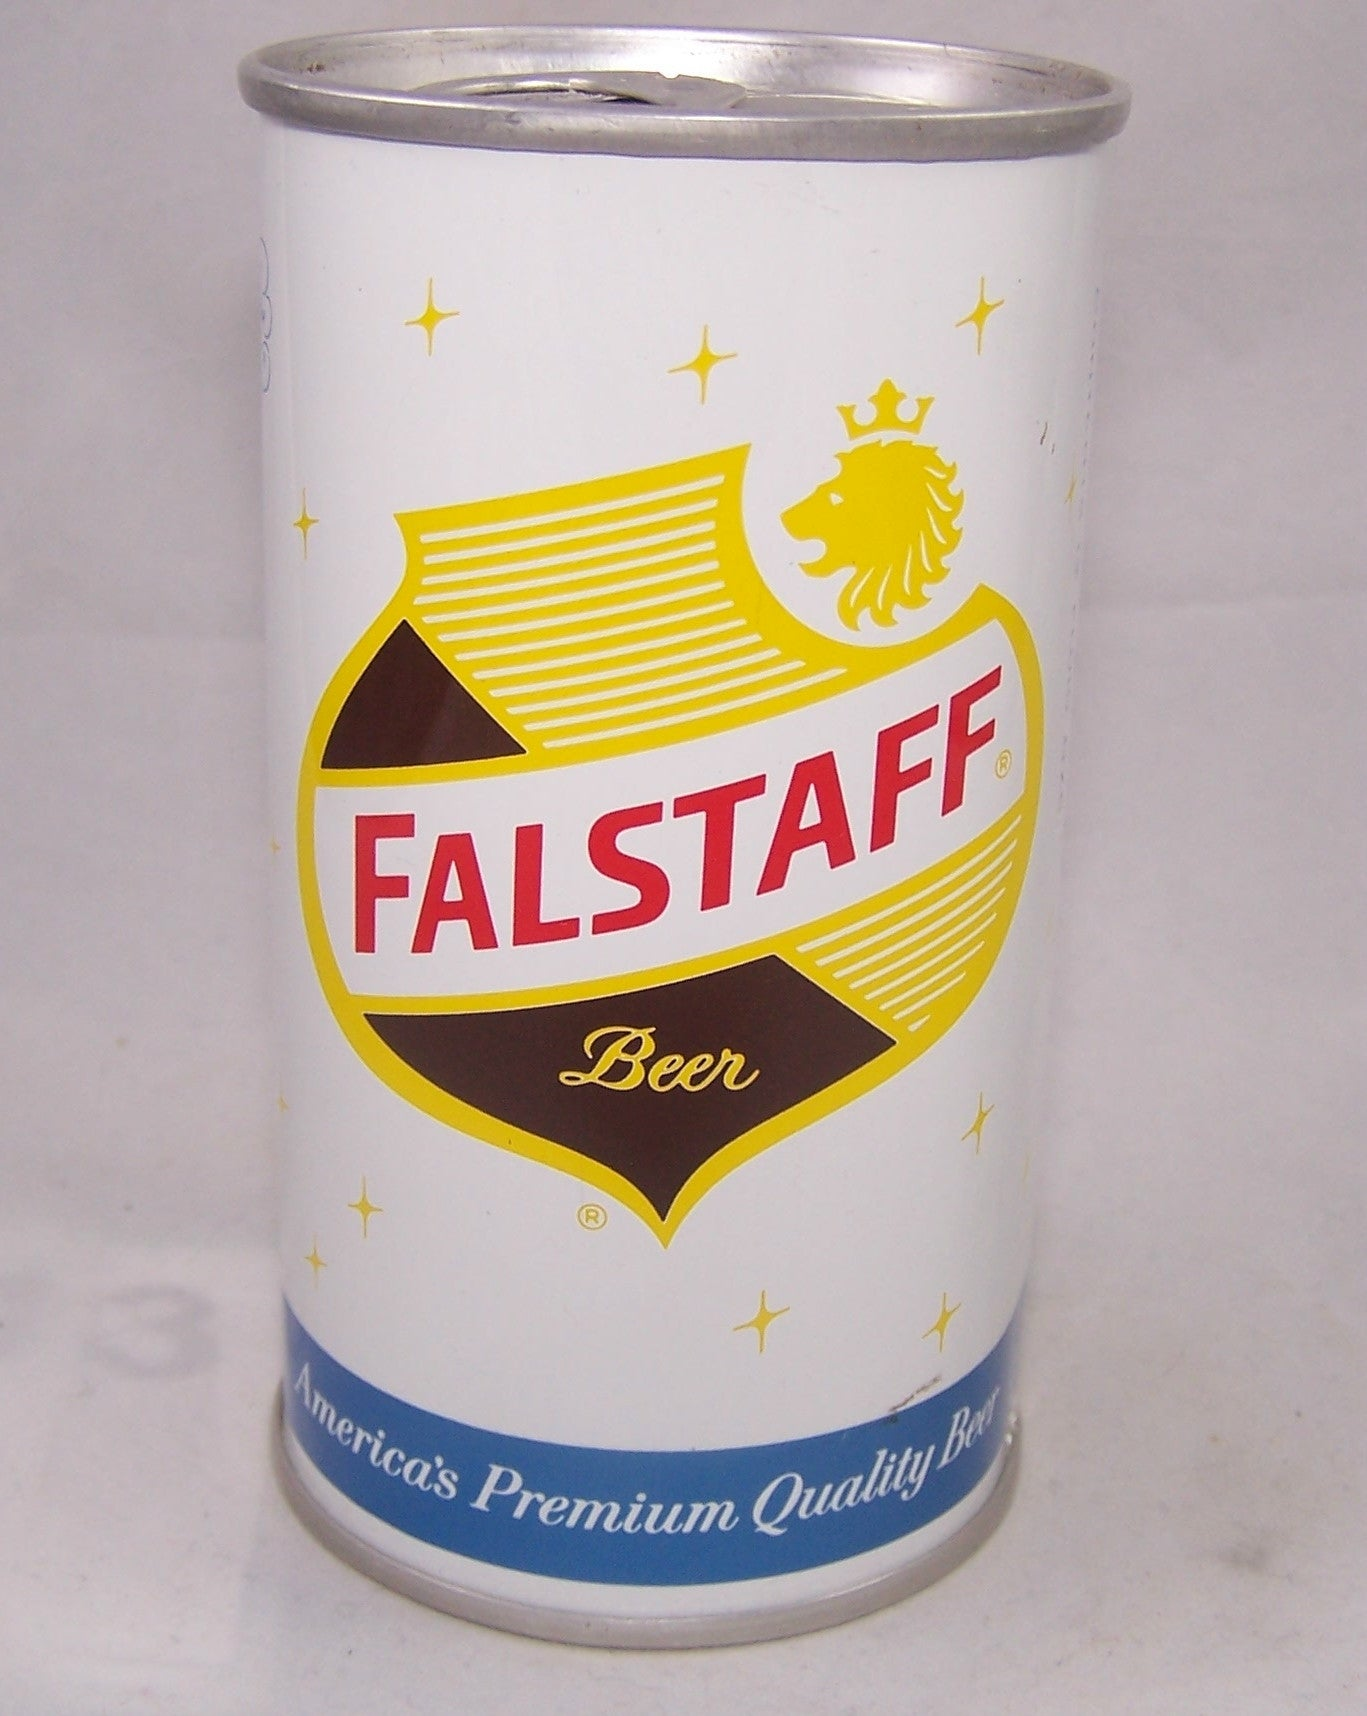 Falstaff Test Can (Enamel) USBC II 231-11, Grade 1/1+